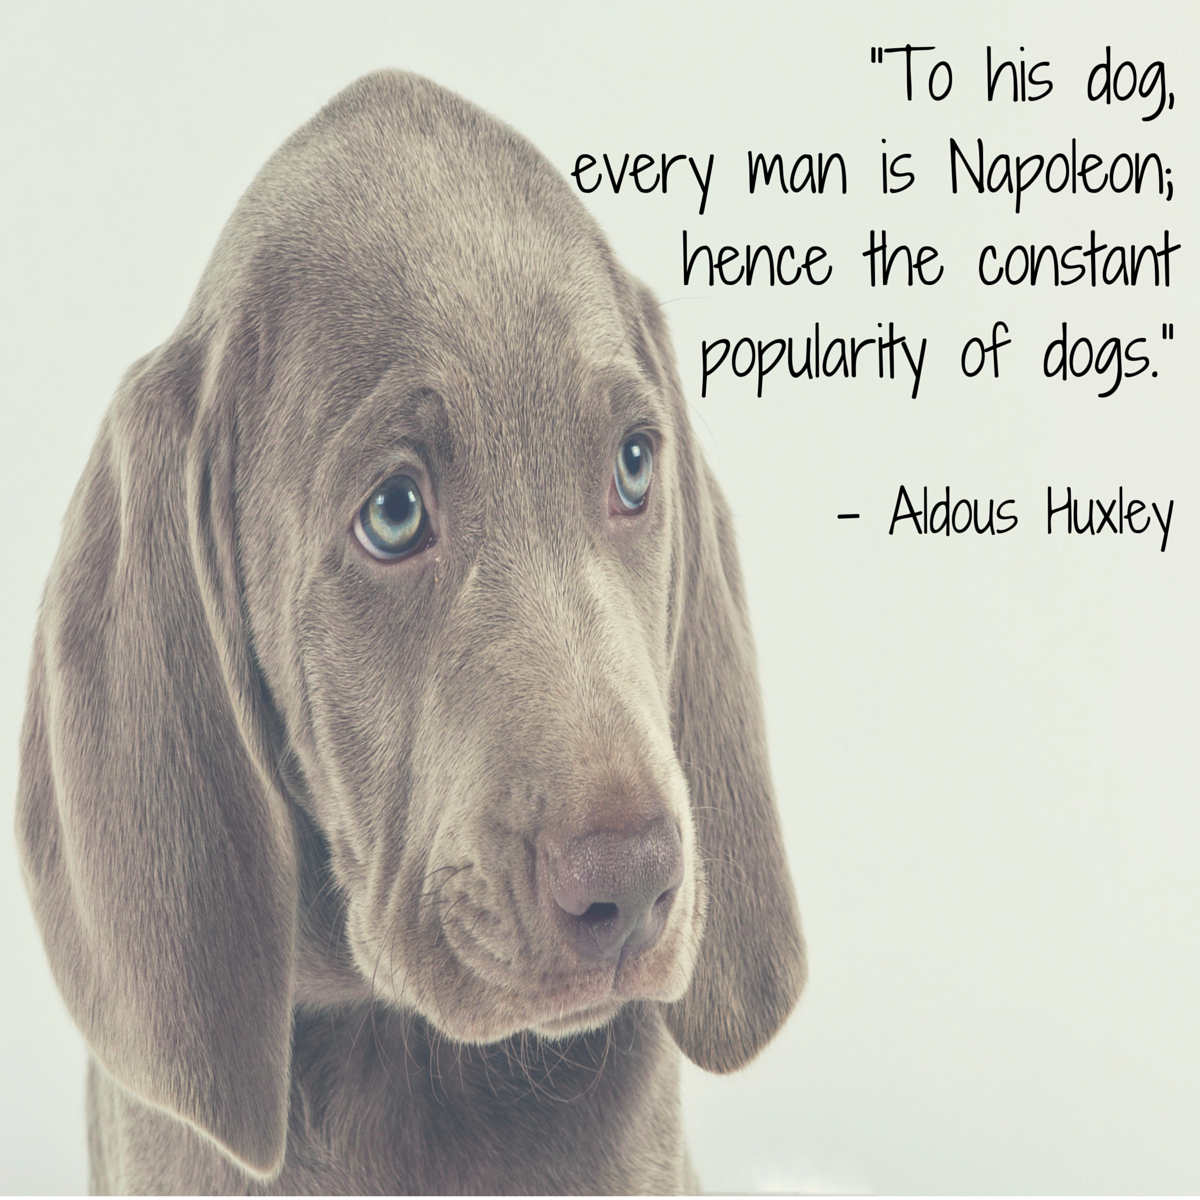 dog quote huxley